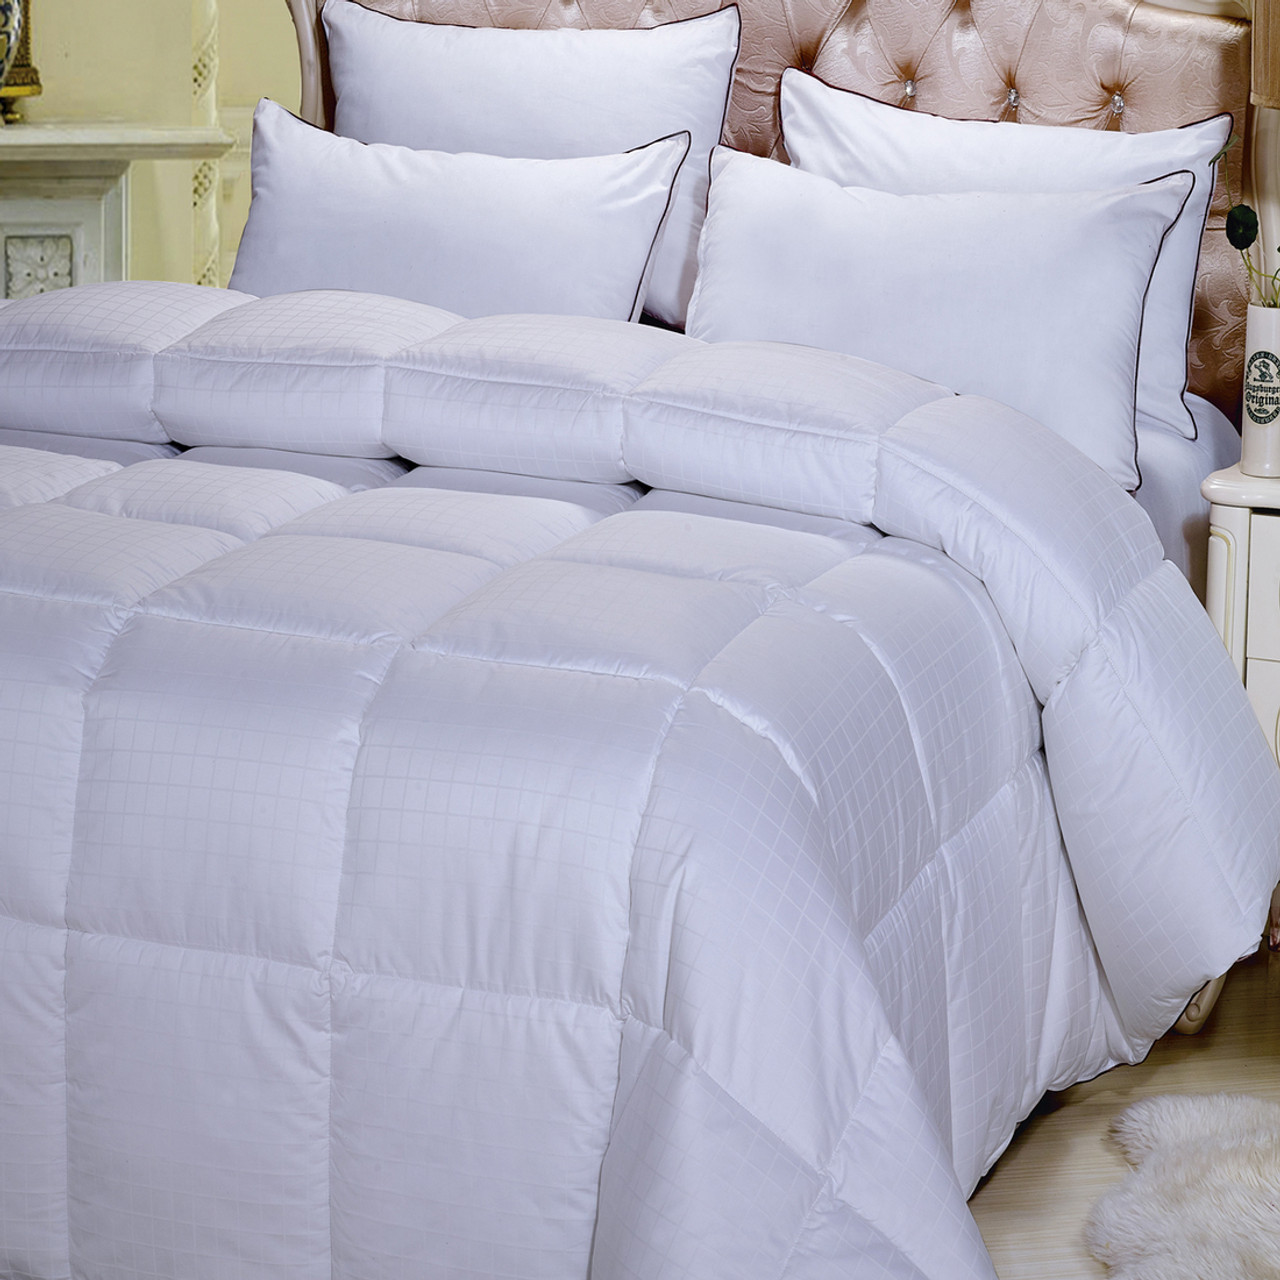 spade kate most chenille drop covers exceptional furniture white quilt luxury comforter down bedding twin bedspreads grey jersey walmart matelasse duvet xl home